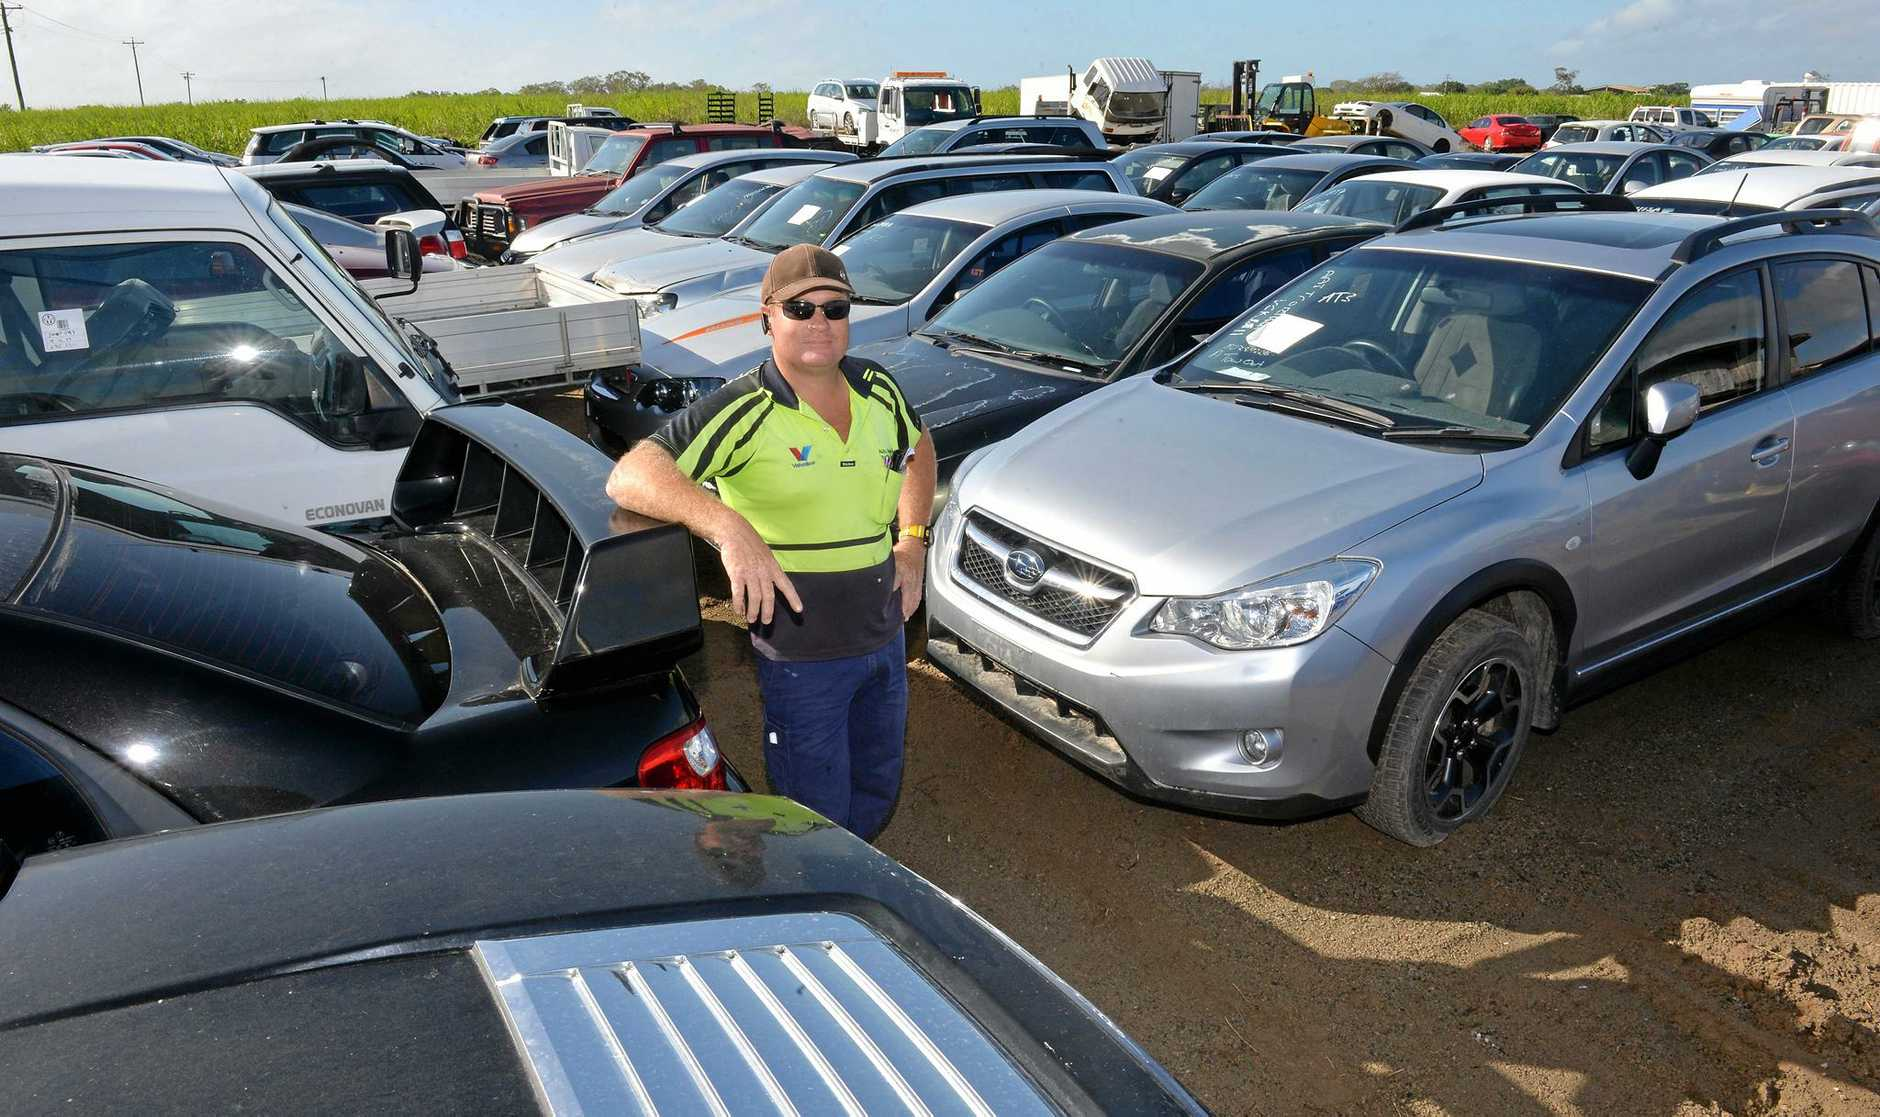 Shane Muntelwit says it's a shame so many vehicles can only be used for parts.